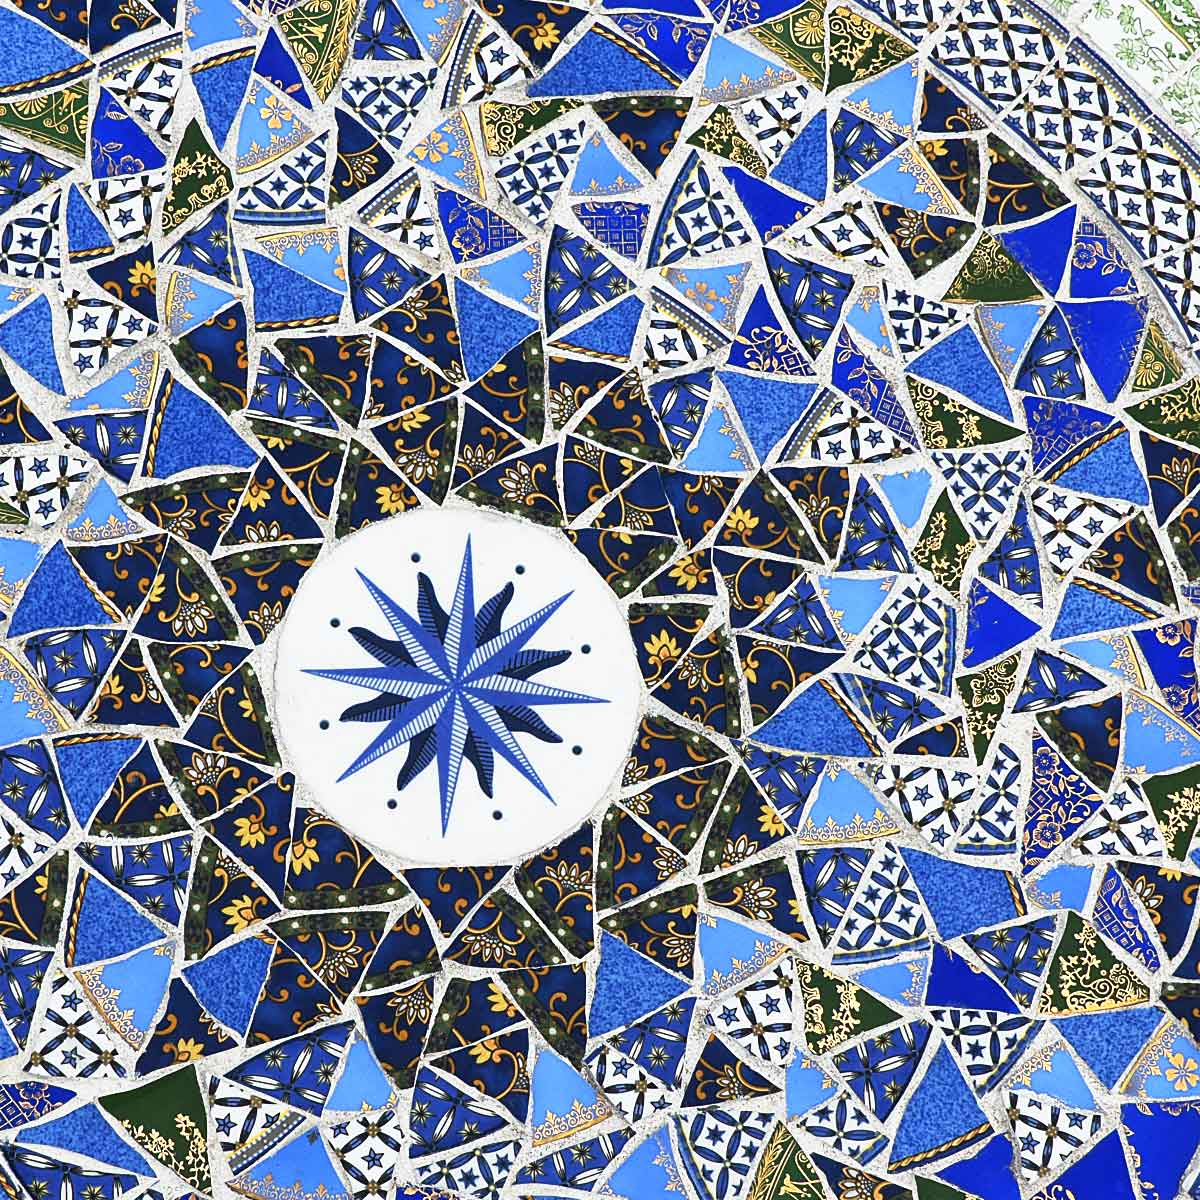 Picassiette Mosaic Table Top